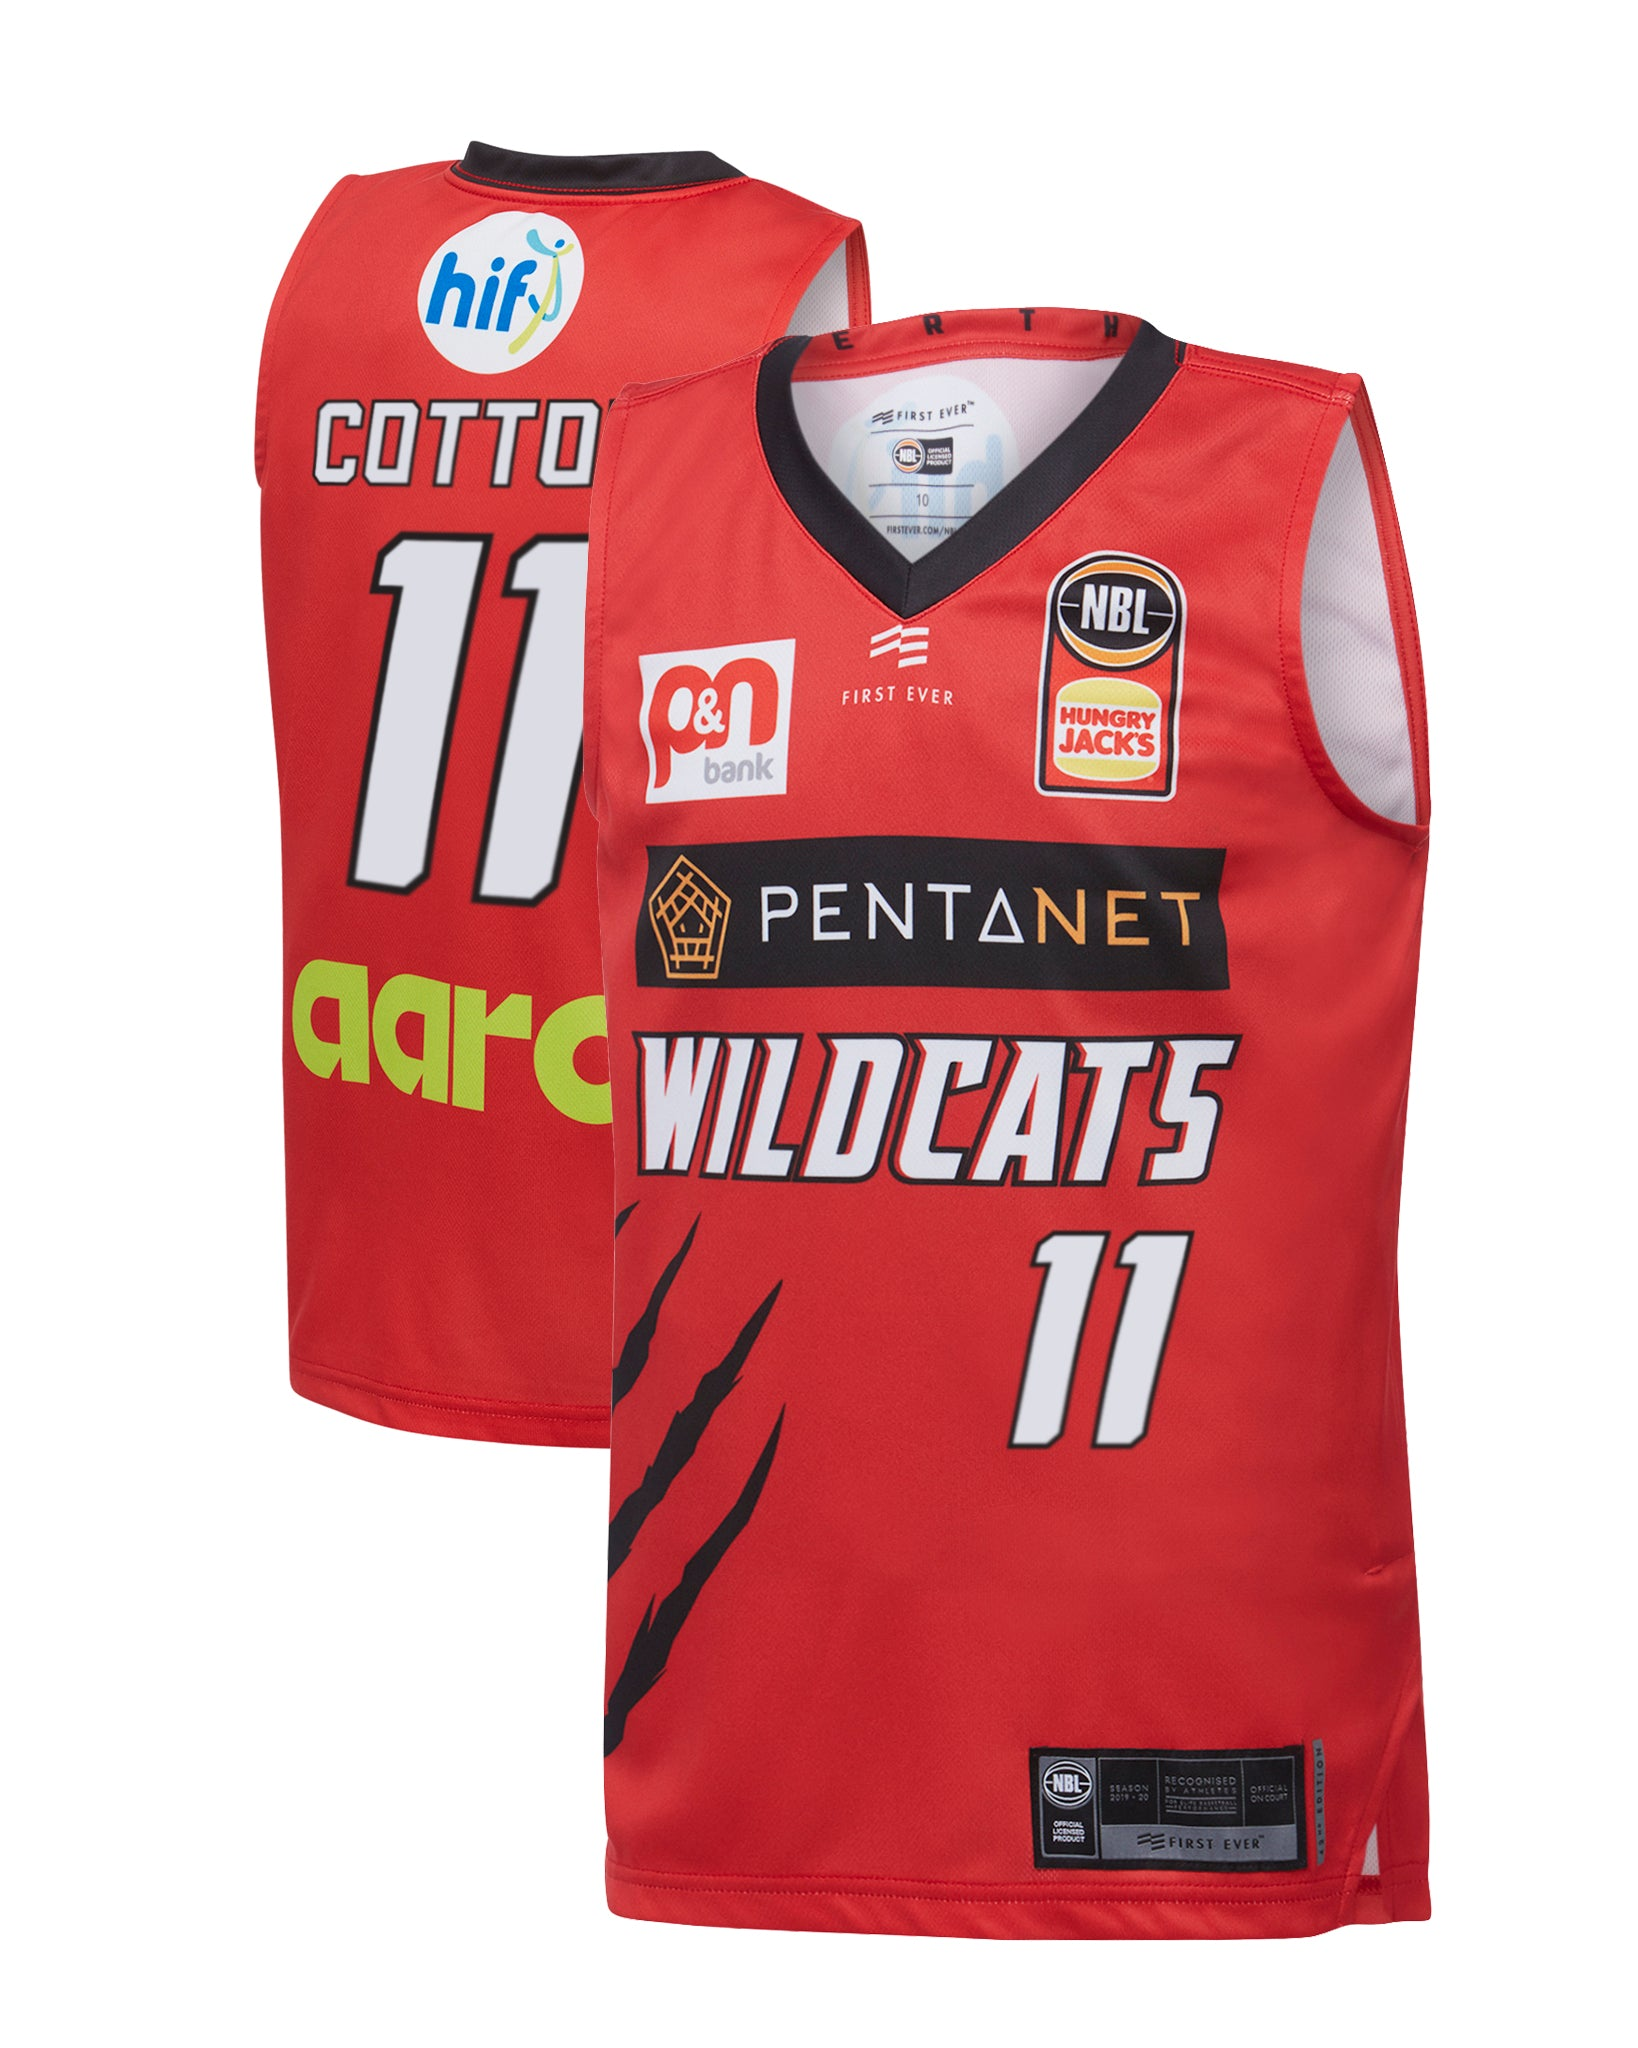 Perth Wildcats 19/20 Youth Authentic Home Jersey - Bryce Cotton